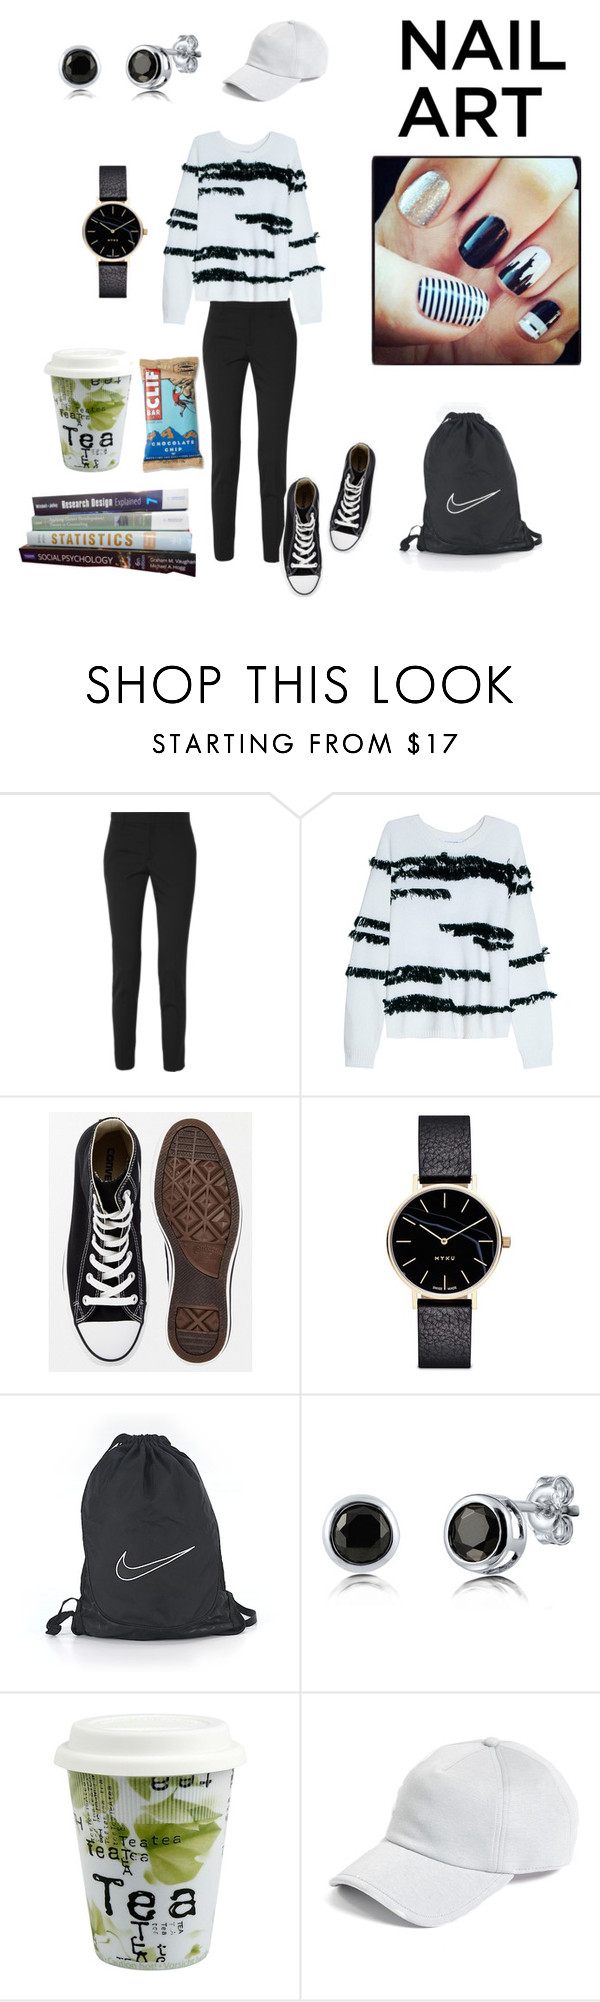 """""""8:00 a.m. Class! 😑"""" by klm62 ❤ liked on Polyvore featuring Gucci, Elizabeth and James, Converse, Myku, NIKE, BERRICLE, Könitz and rag & bone"""